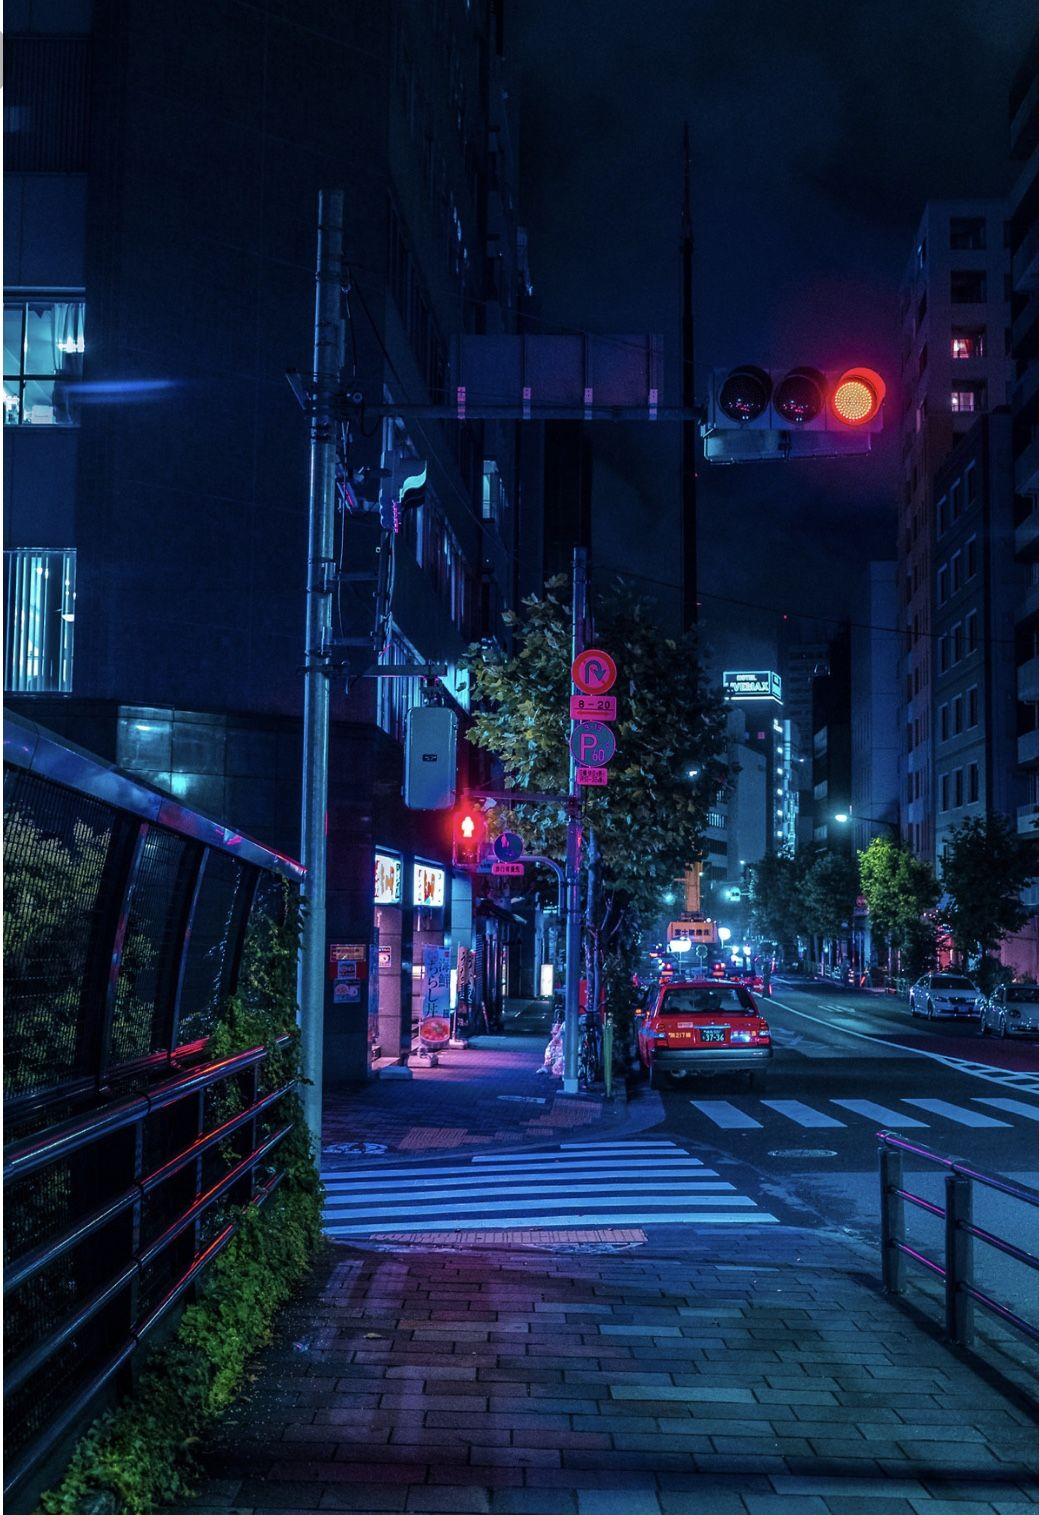 Pin By Paris Brewer On Aesthetics Urban Landscape Landscape Photography City Aesthetic